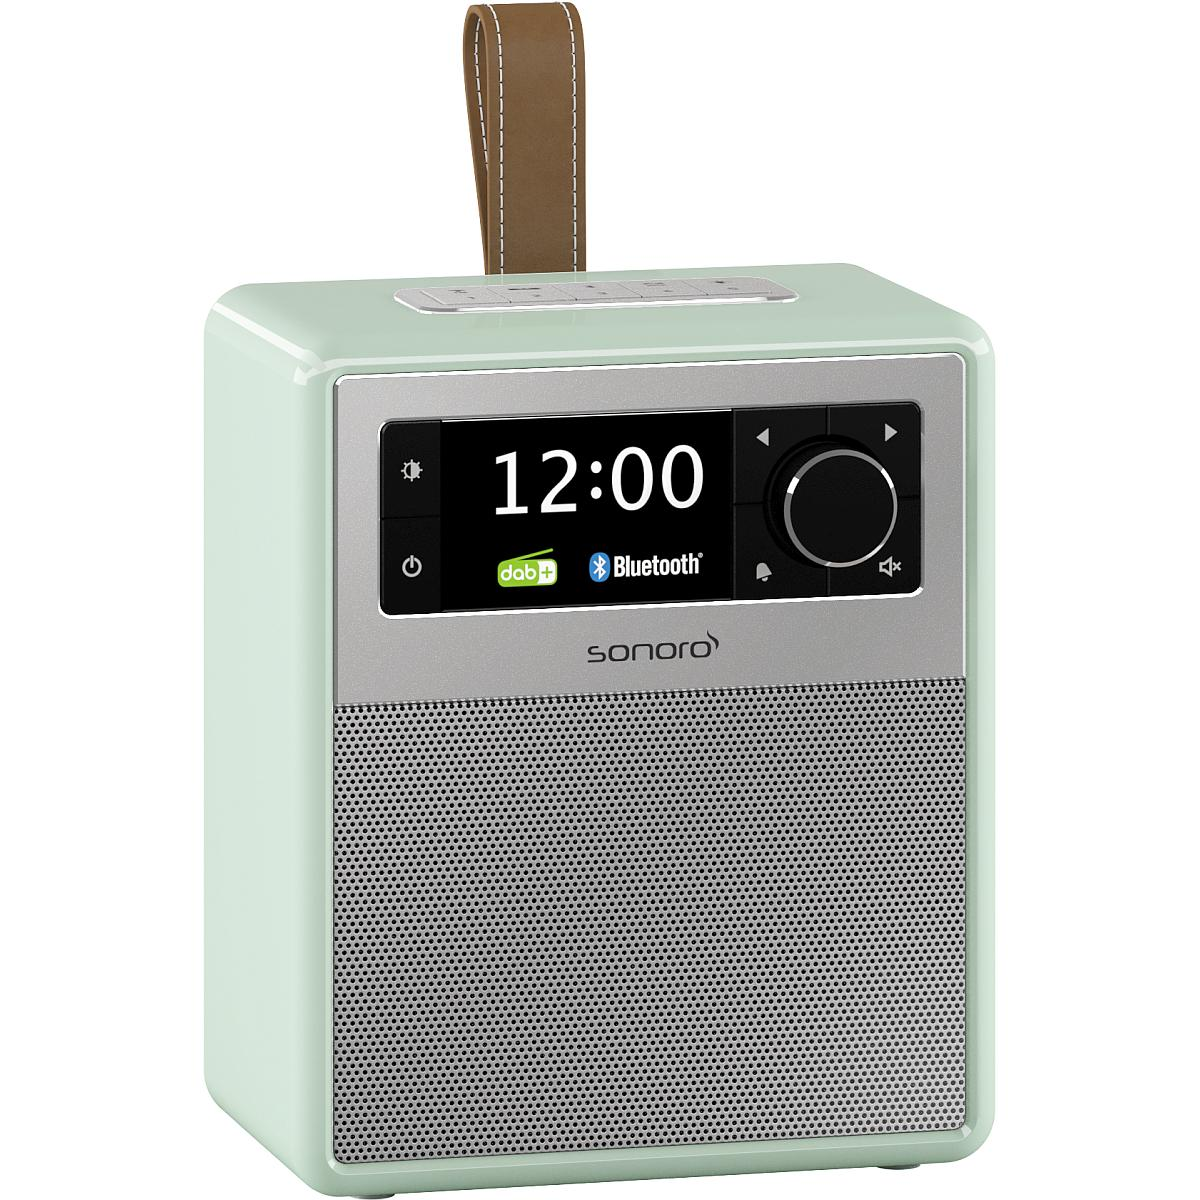 sonoro Easy Bluetooth Radio pastellgrün